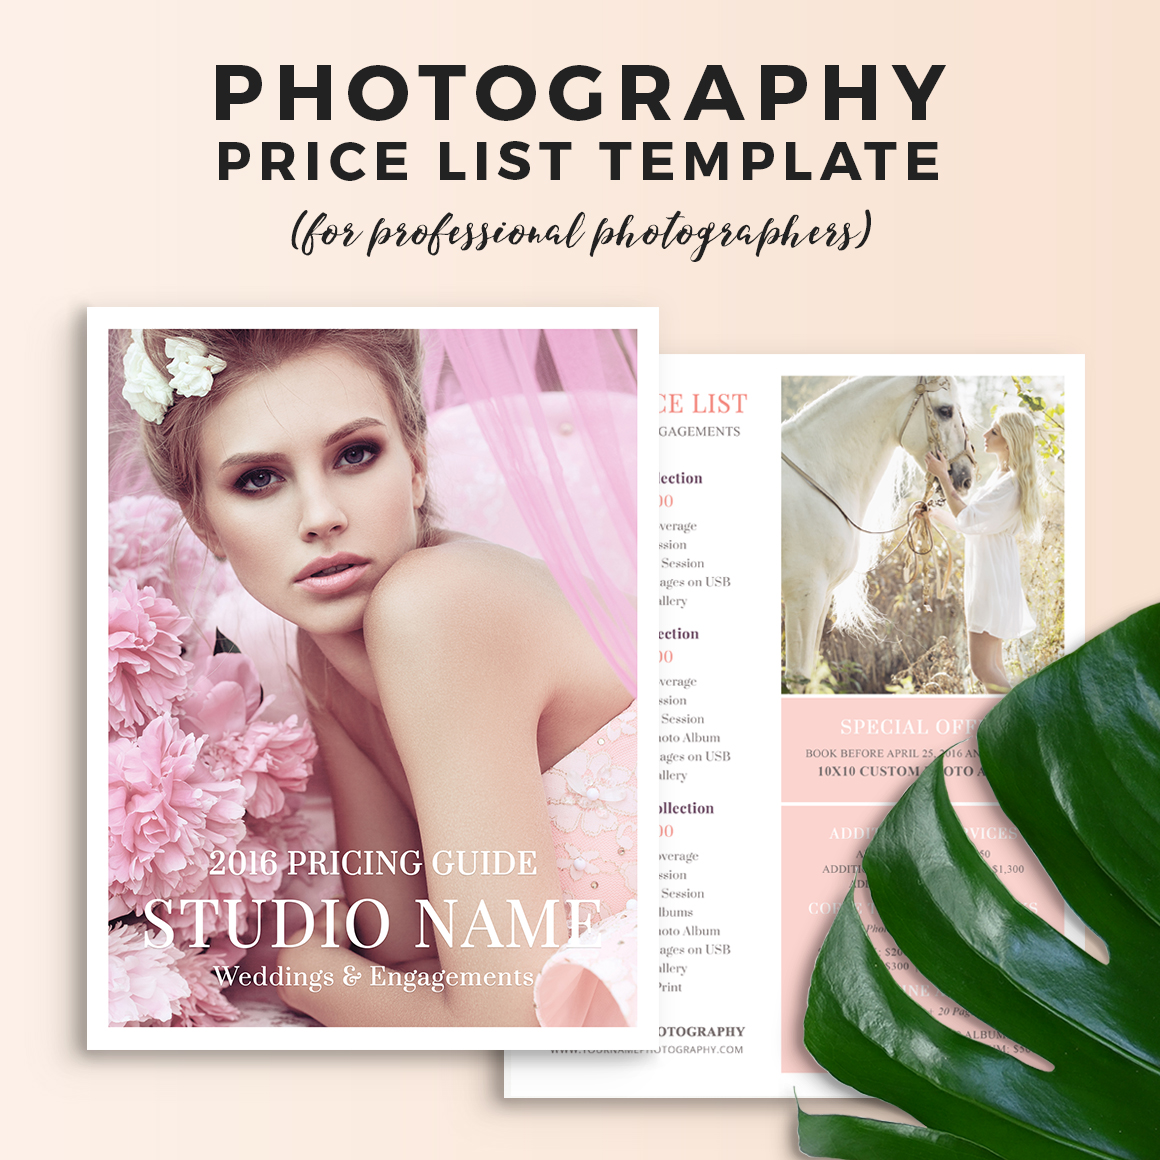 Wedding Photography Pricing.Wedding Photography Pricing Guide Template Megan